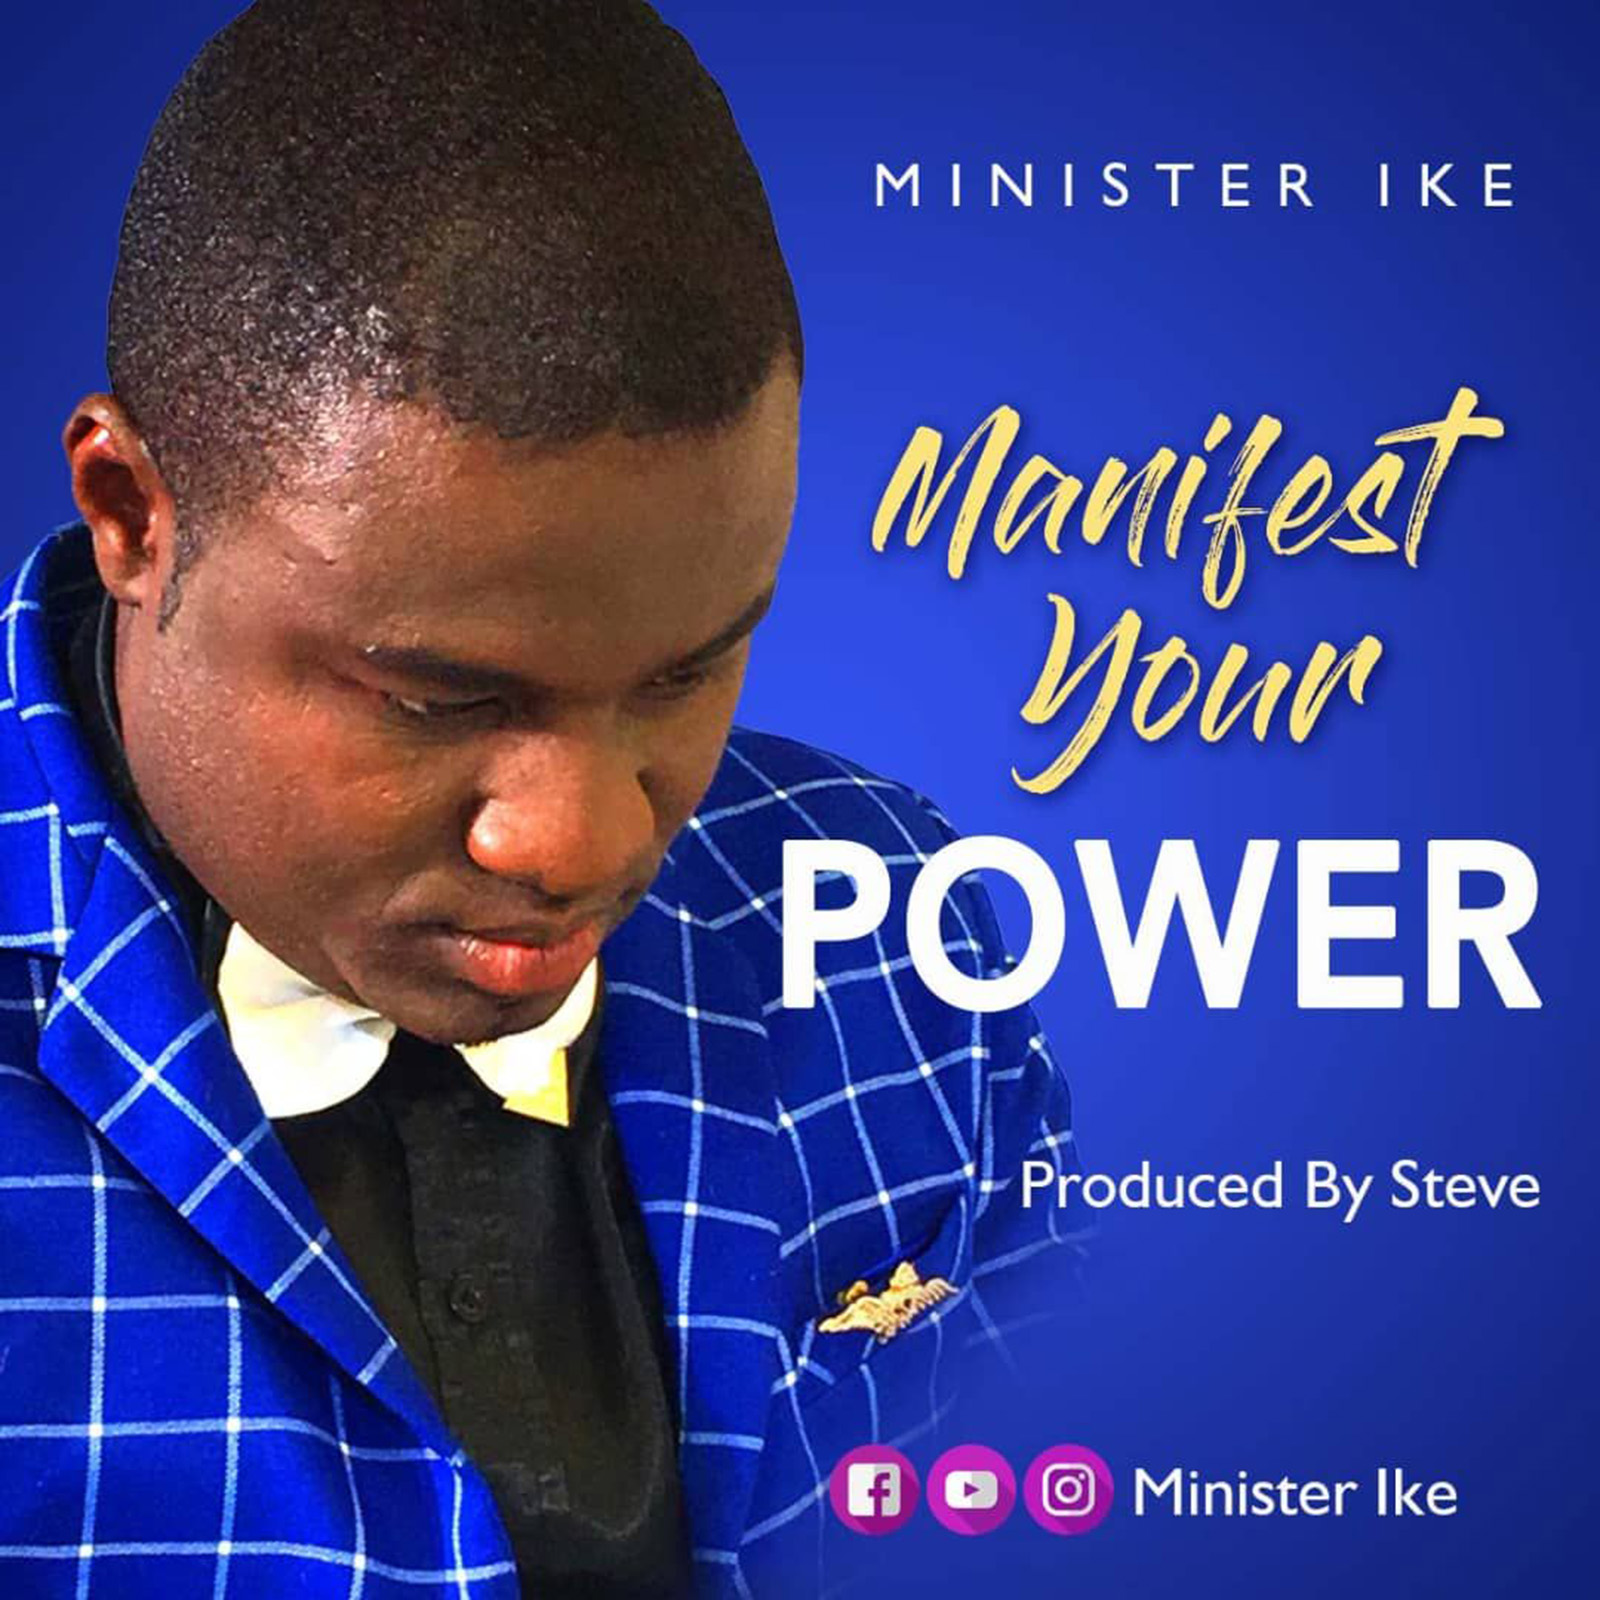 Manifest Your Power by Minister Ike